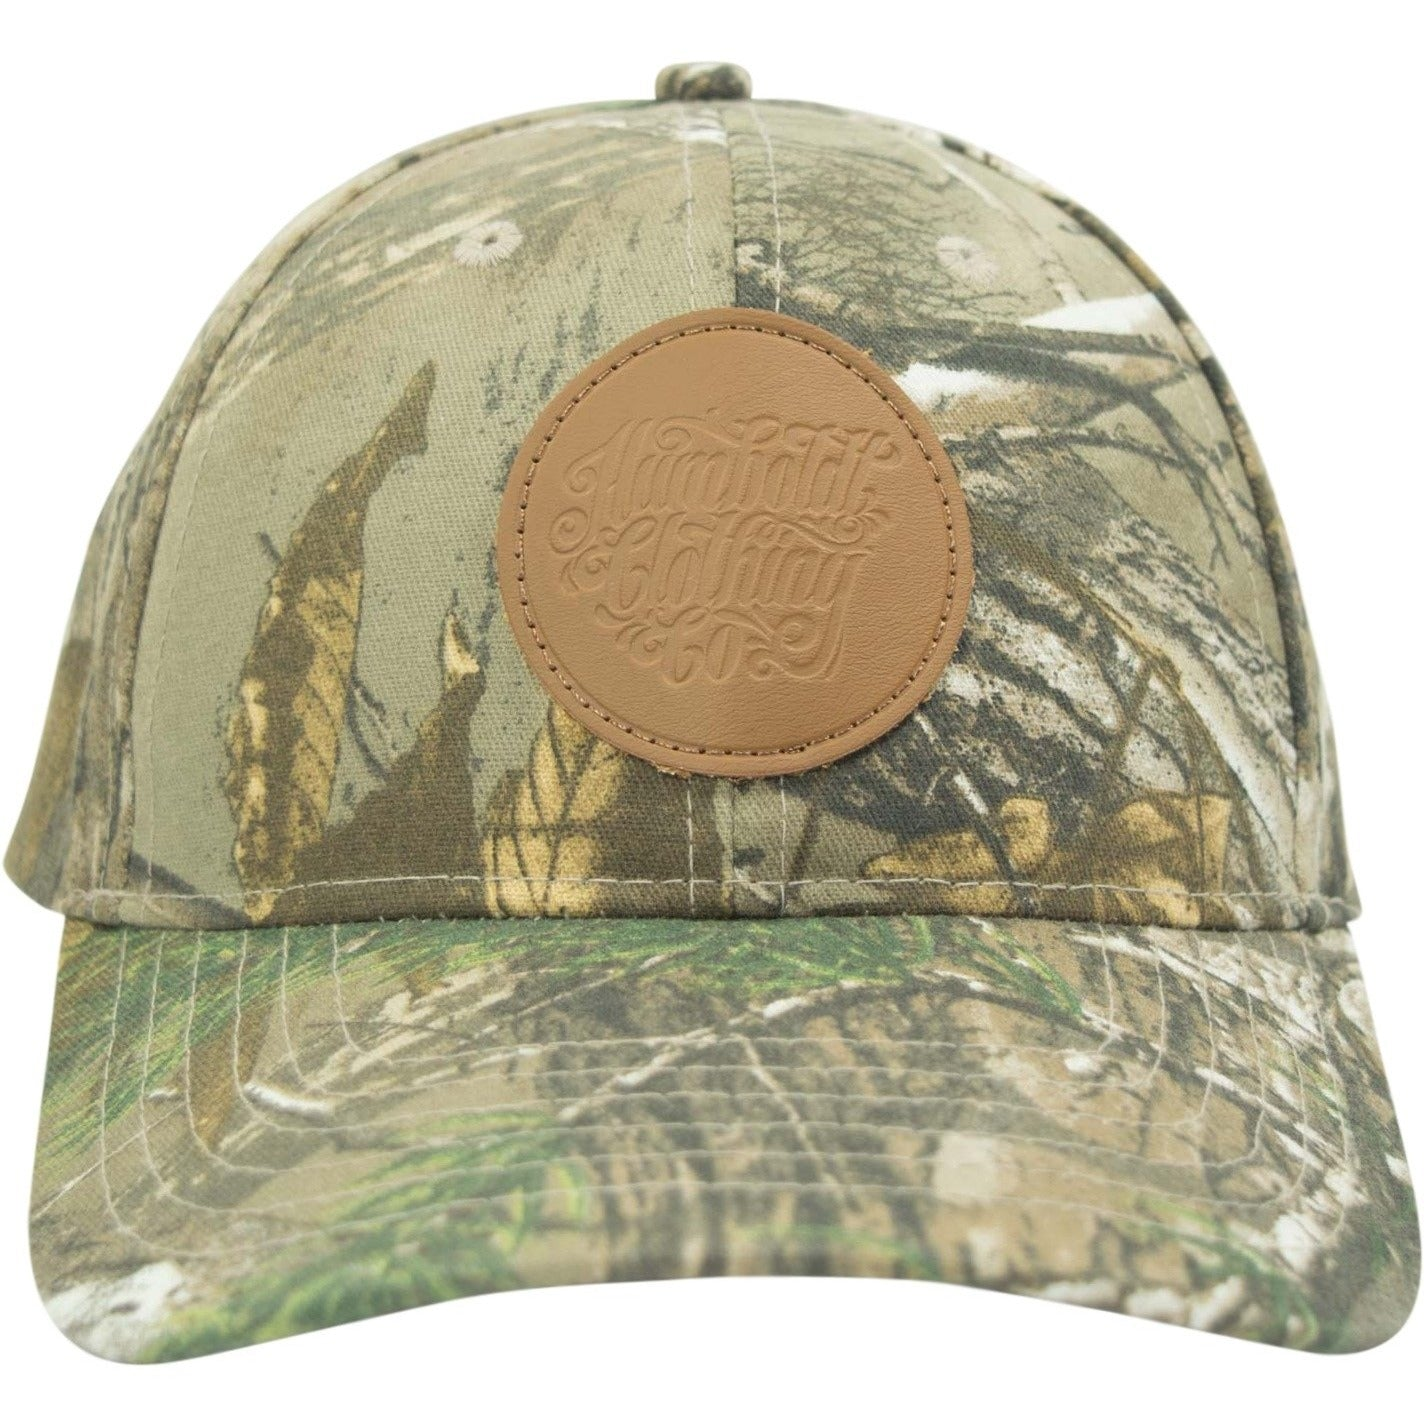 34051b972b9 Curved Bill Camo Leather Patch Strap Hat - Humboldt Clothing Company